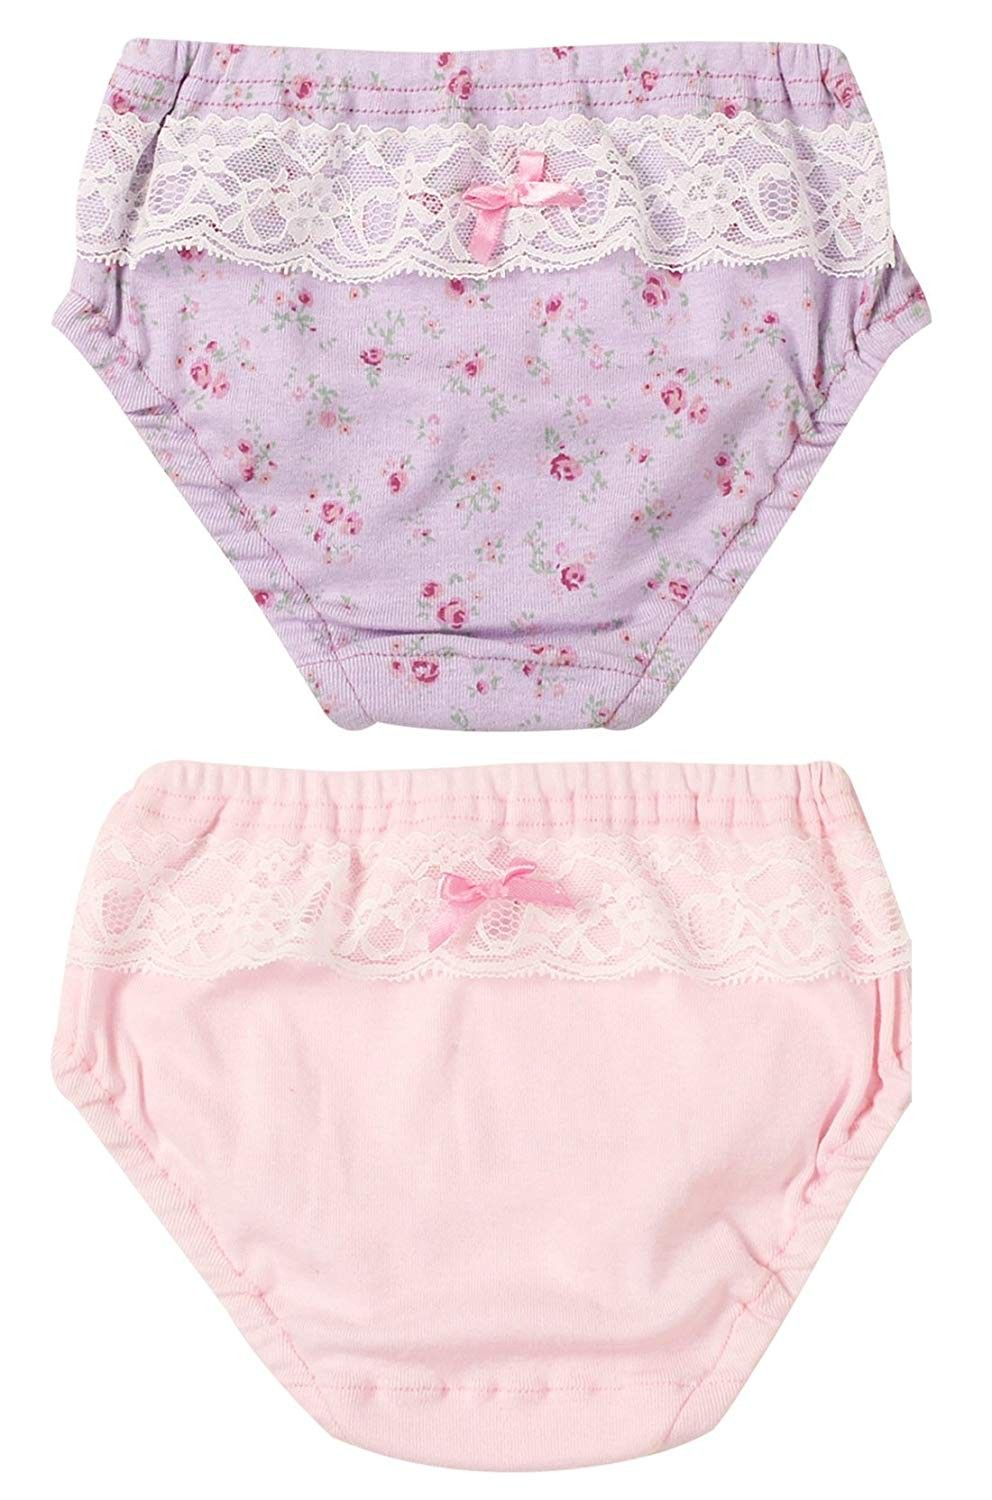 18cac7e421f Baby Girls Underwear Flower Printed Soft Cotton Briefs 2 Pack 1t Purple  Pink S - Purple